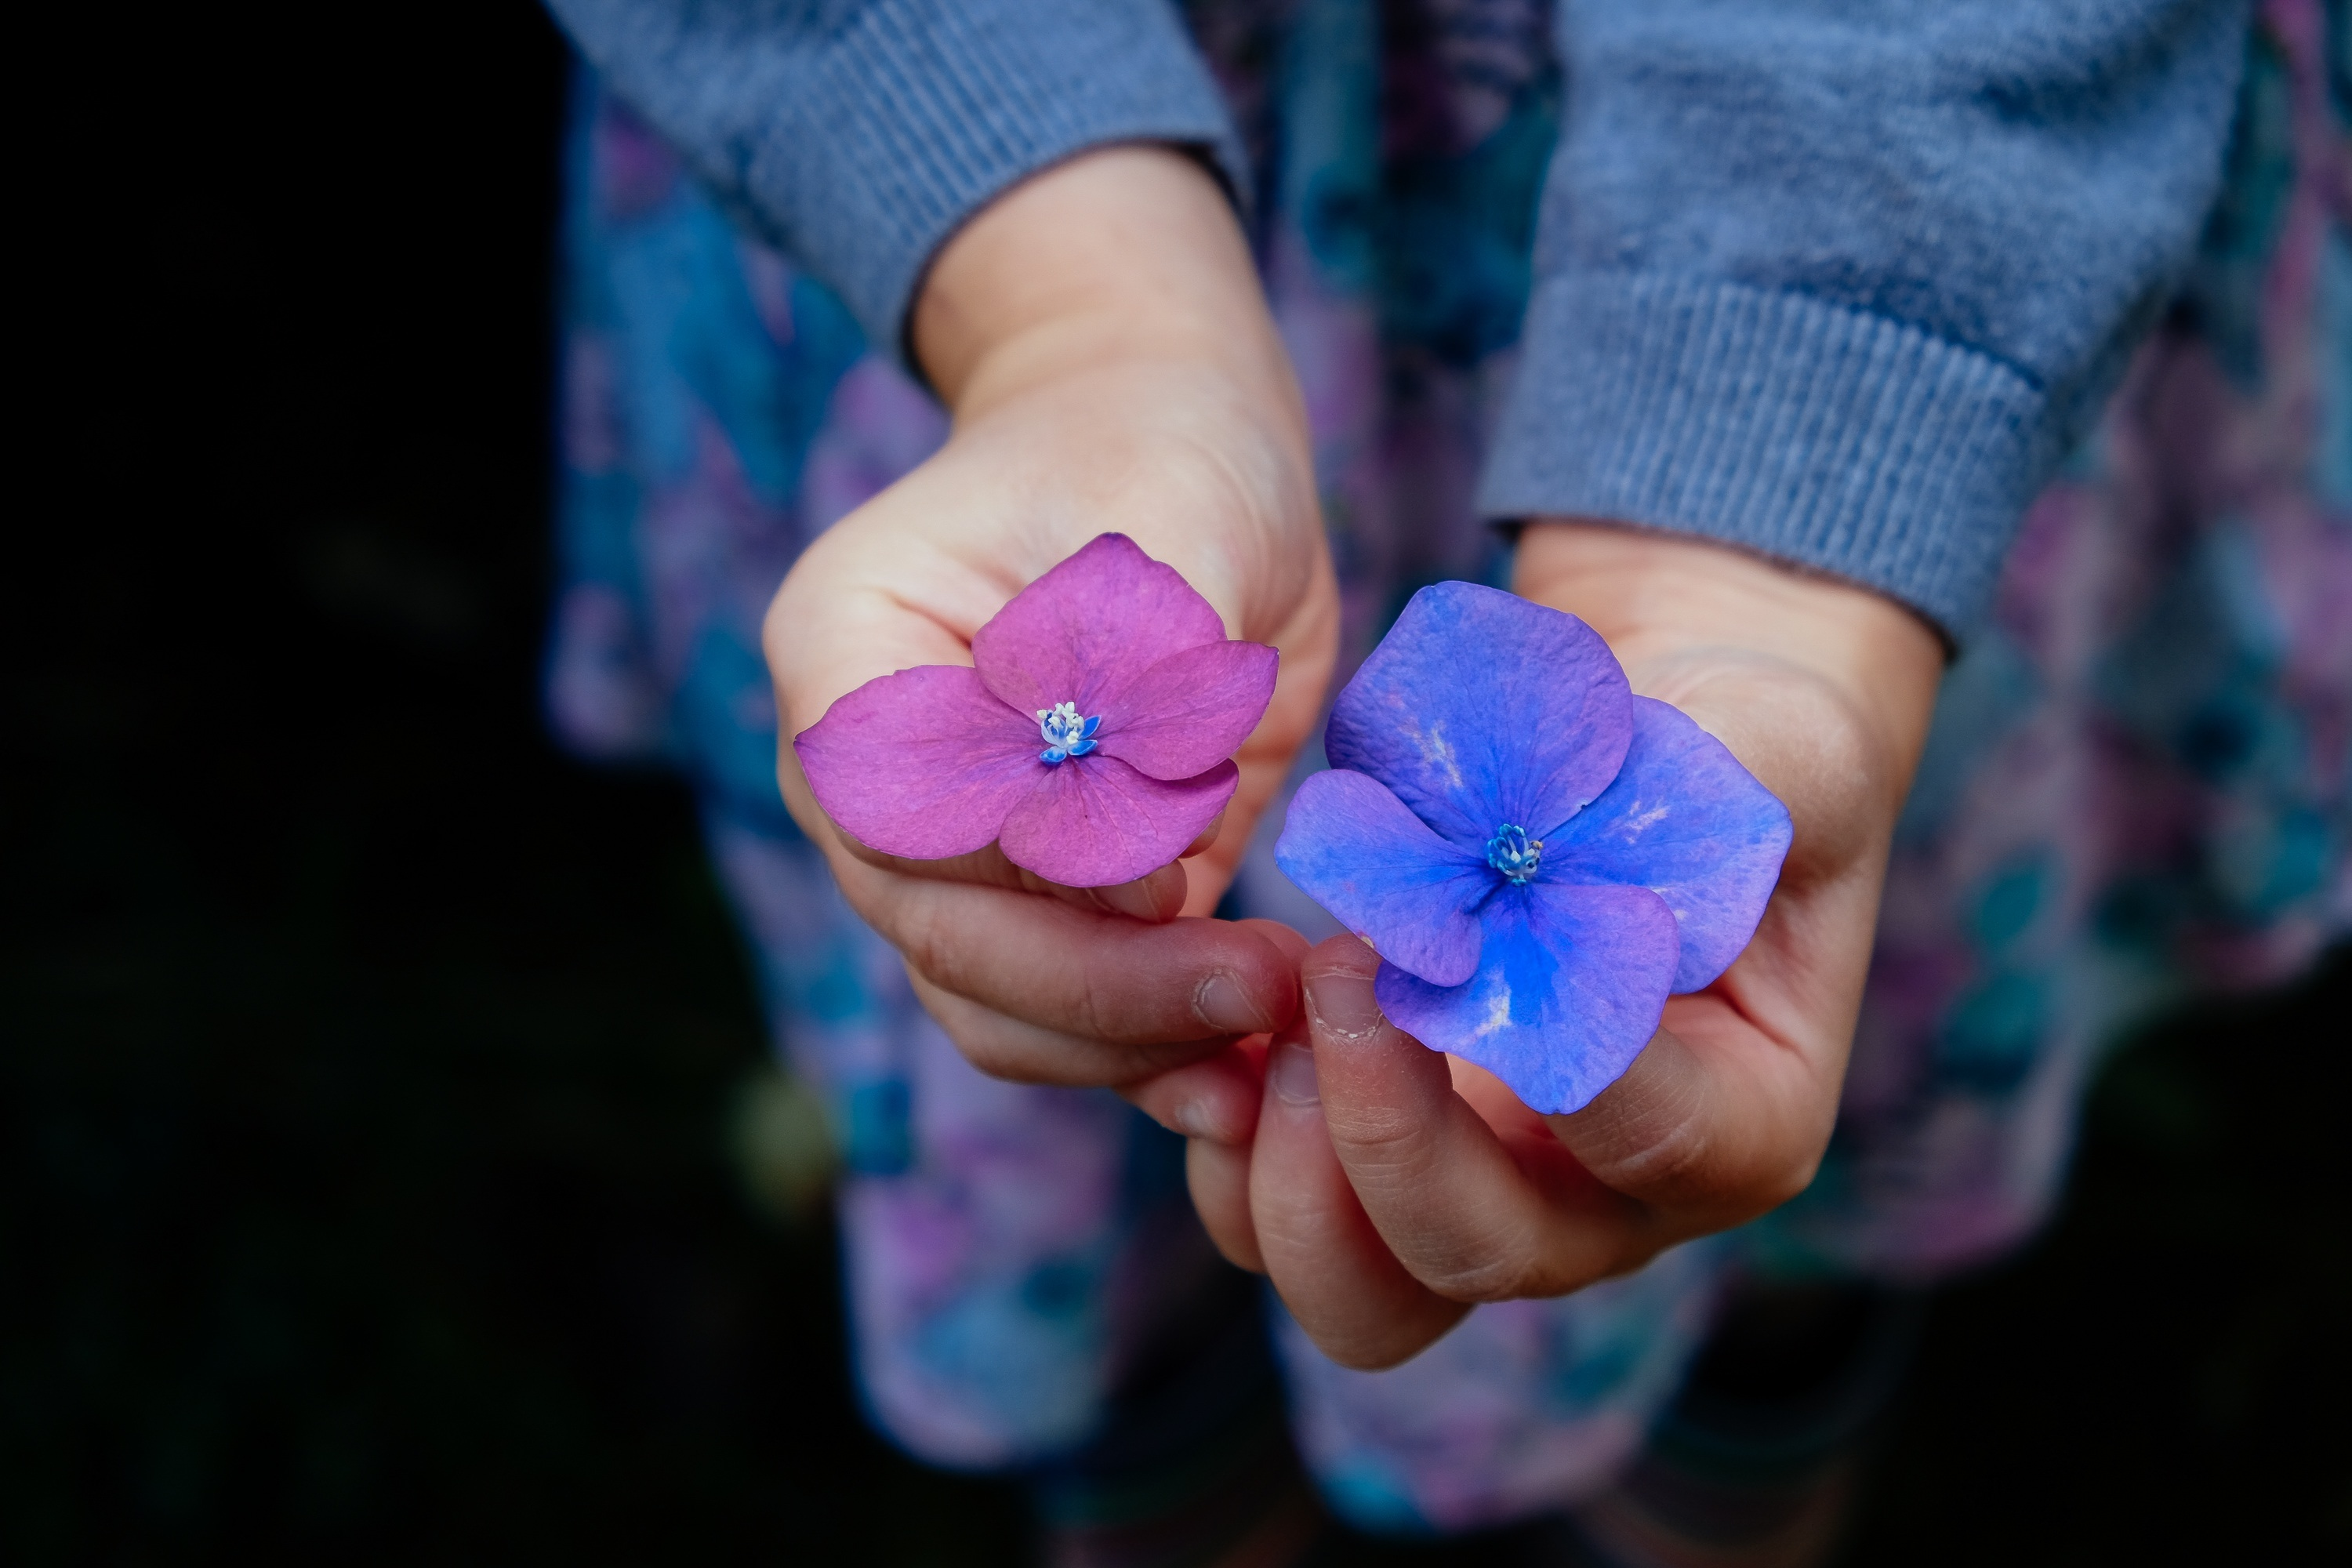 Purple And Blue Flowers In Female Hands Free Image